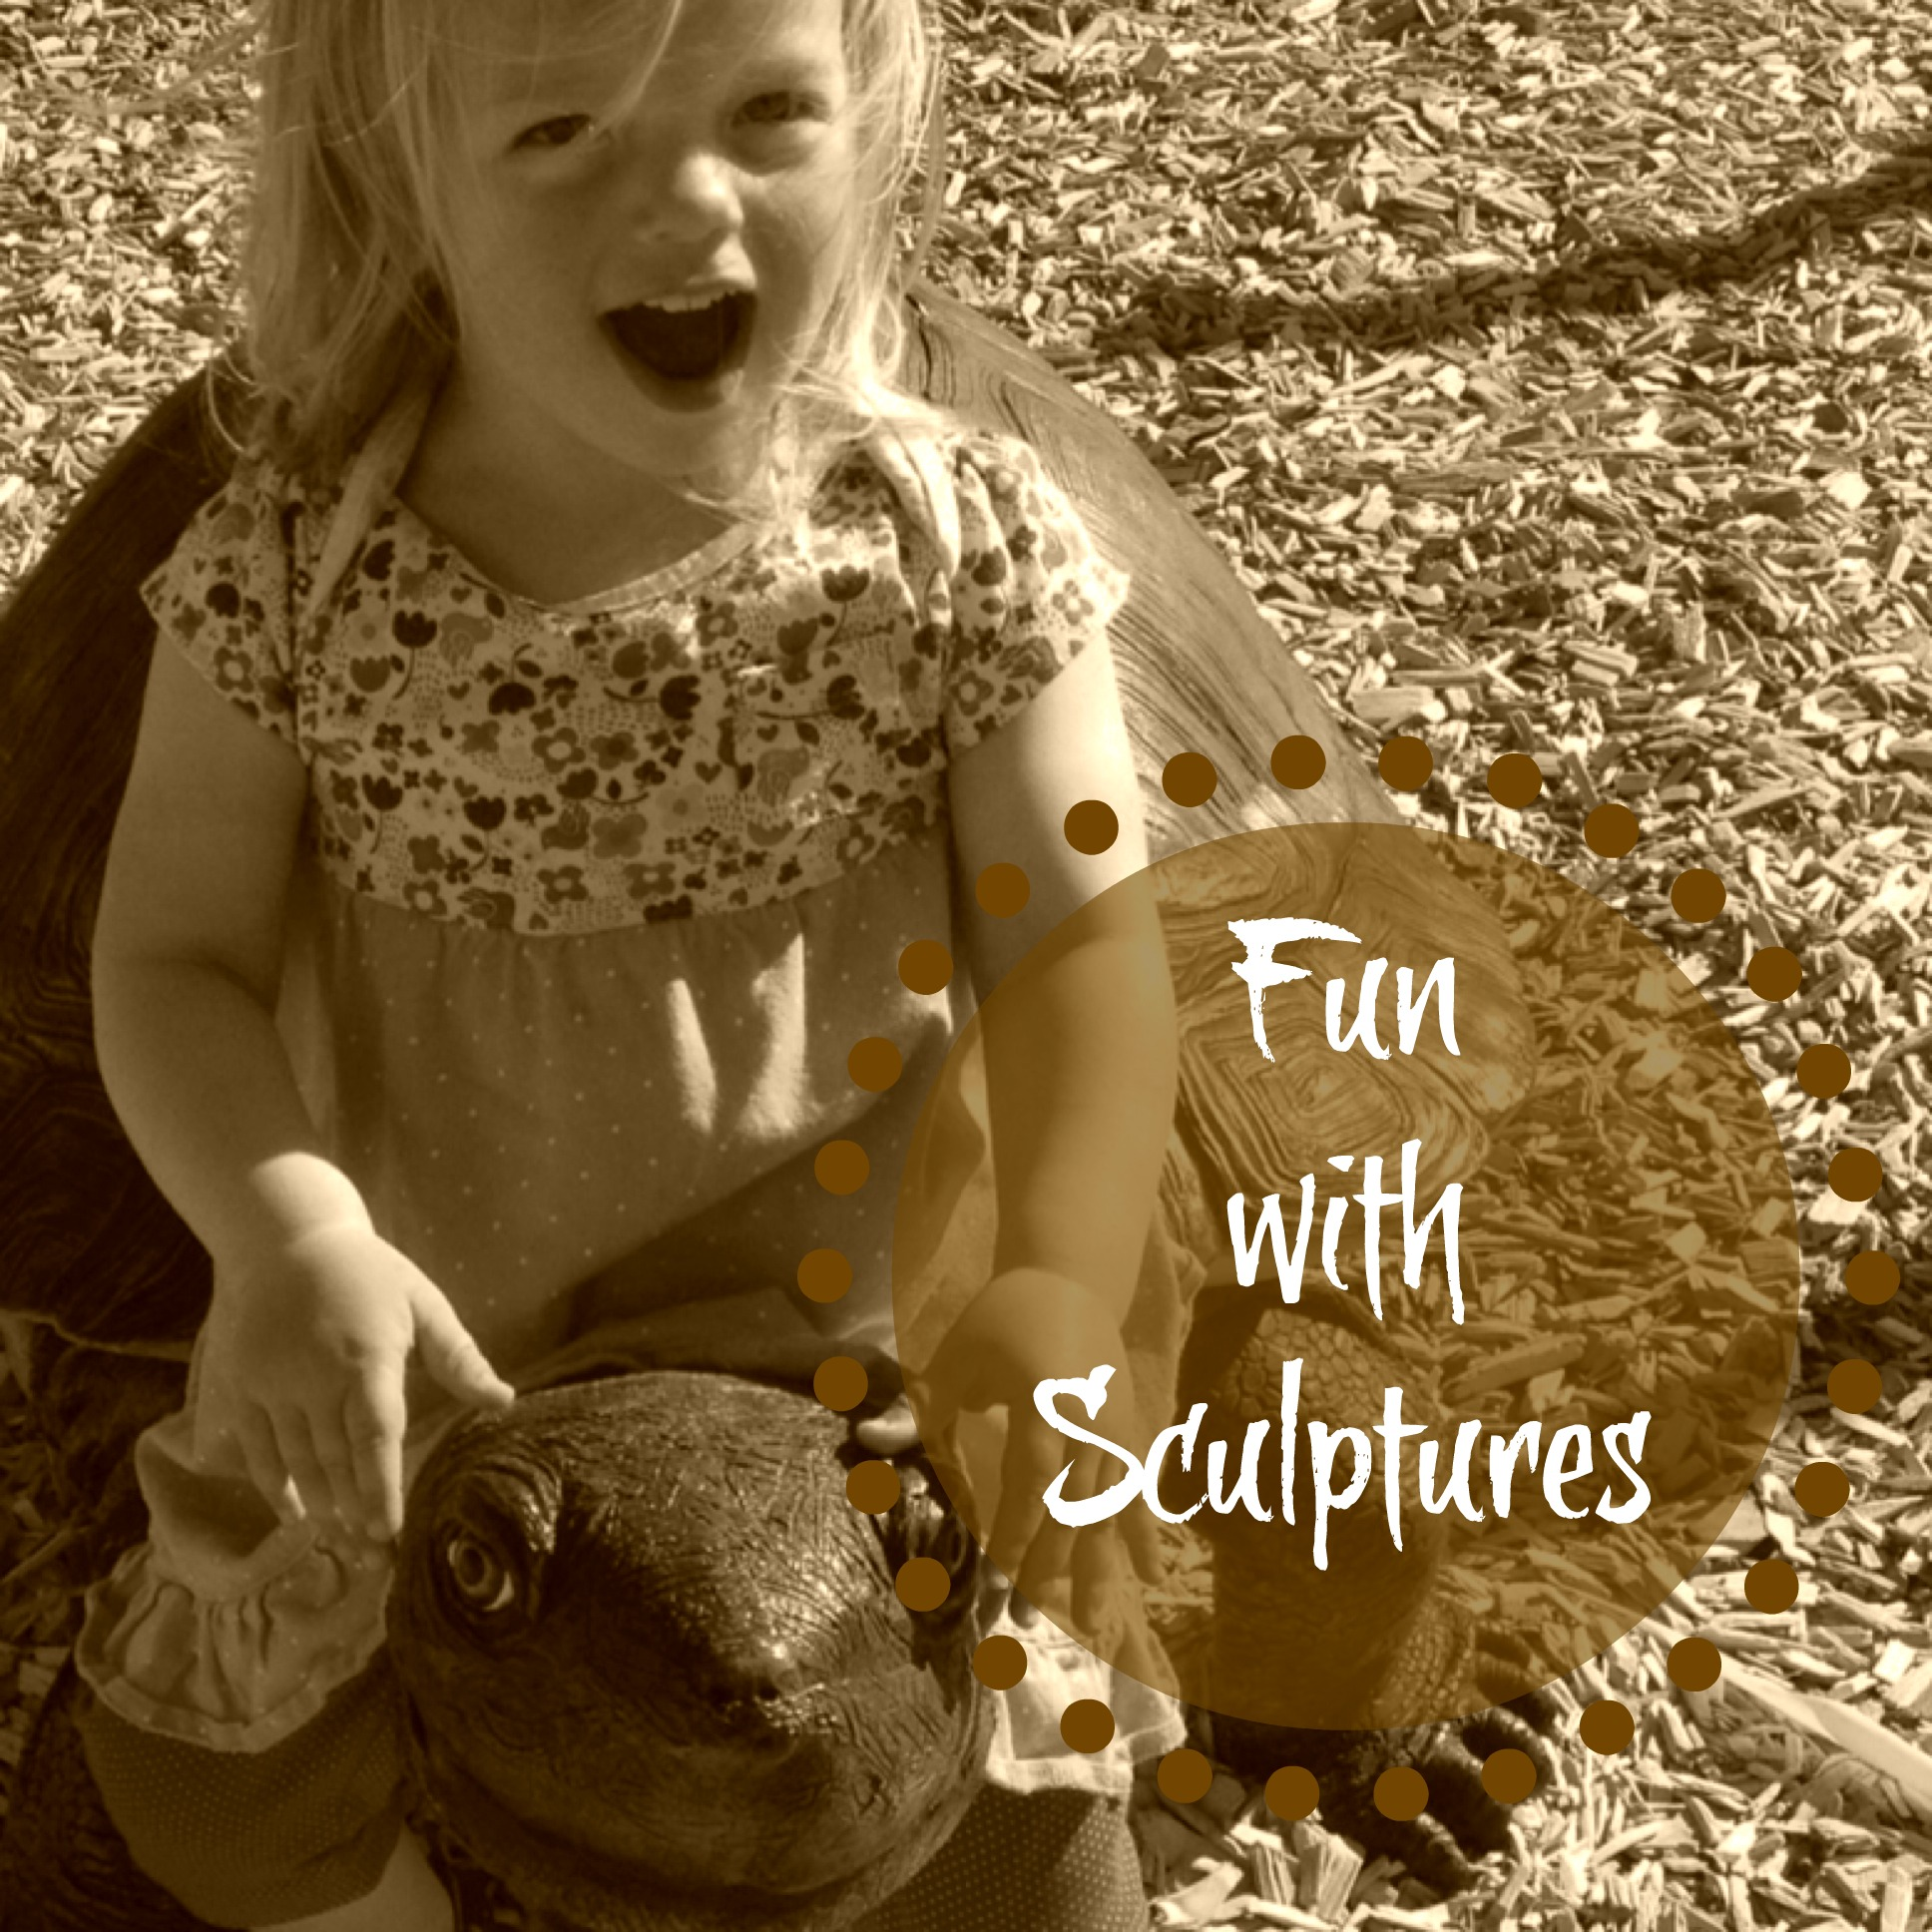 Country Kids: fun with sculptures